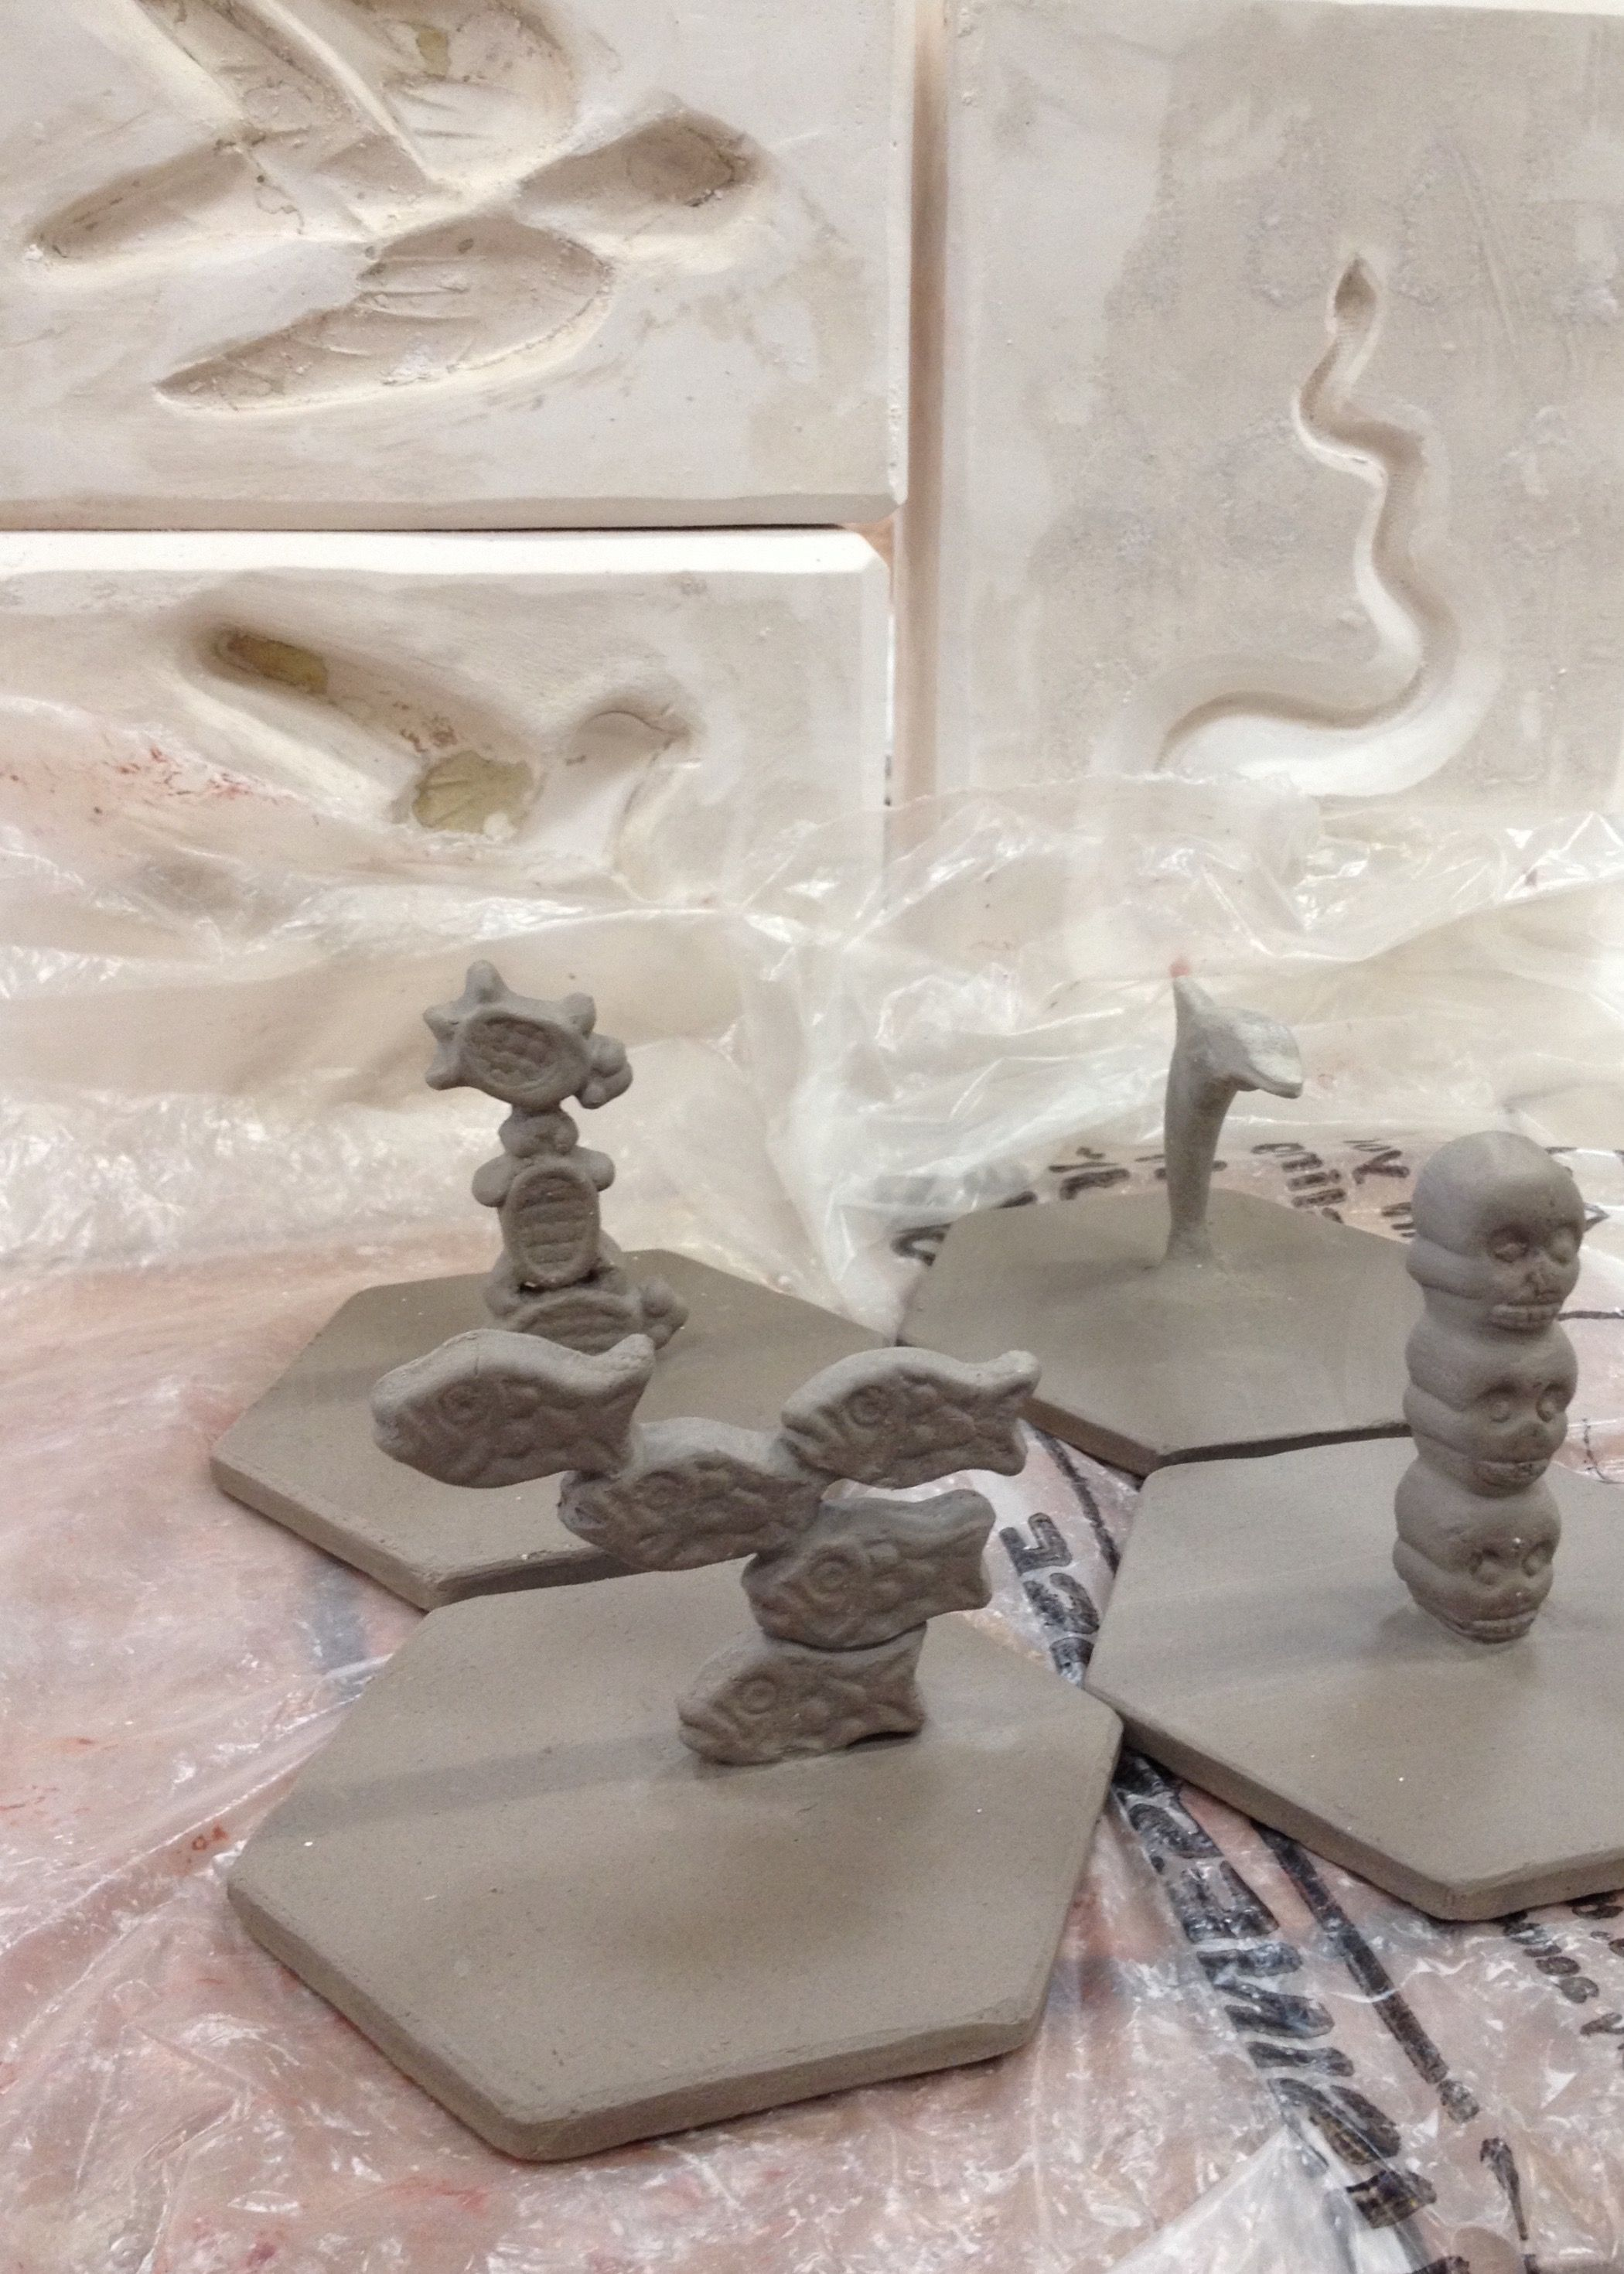 B.C. WEST COAST mini sculptures in progress and new swallow and snake moulds made by artist geordie groenhuysen